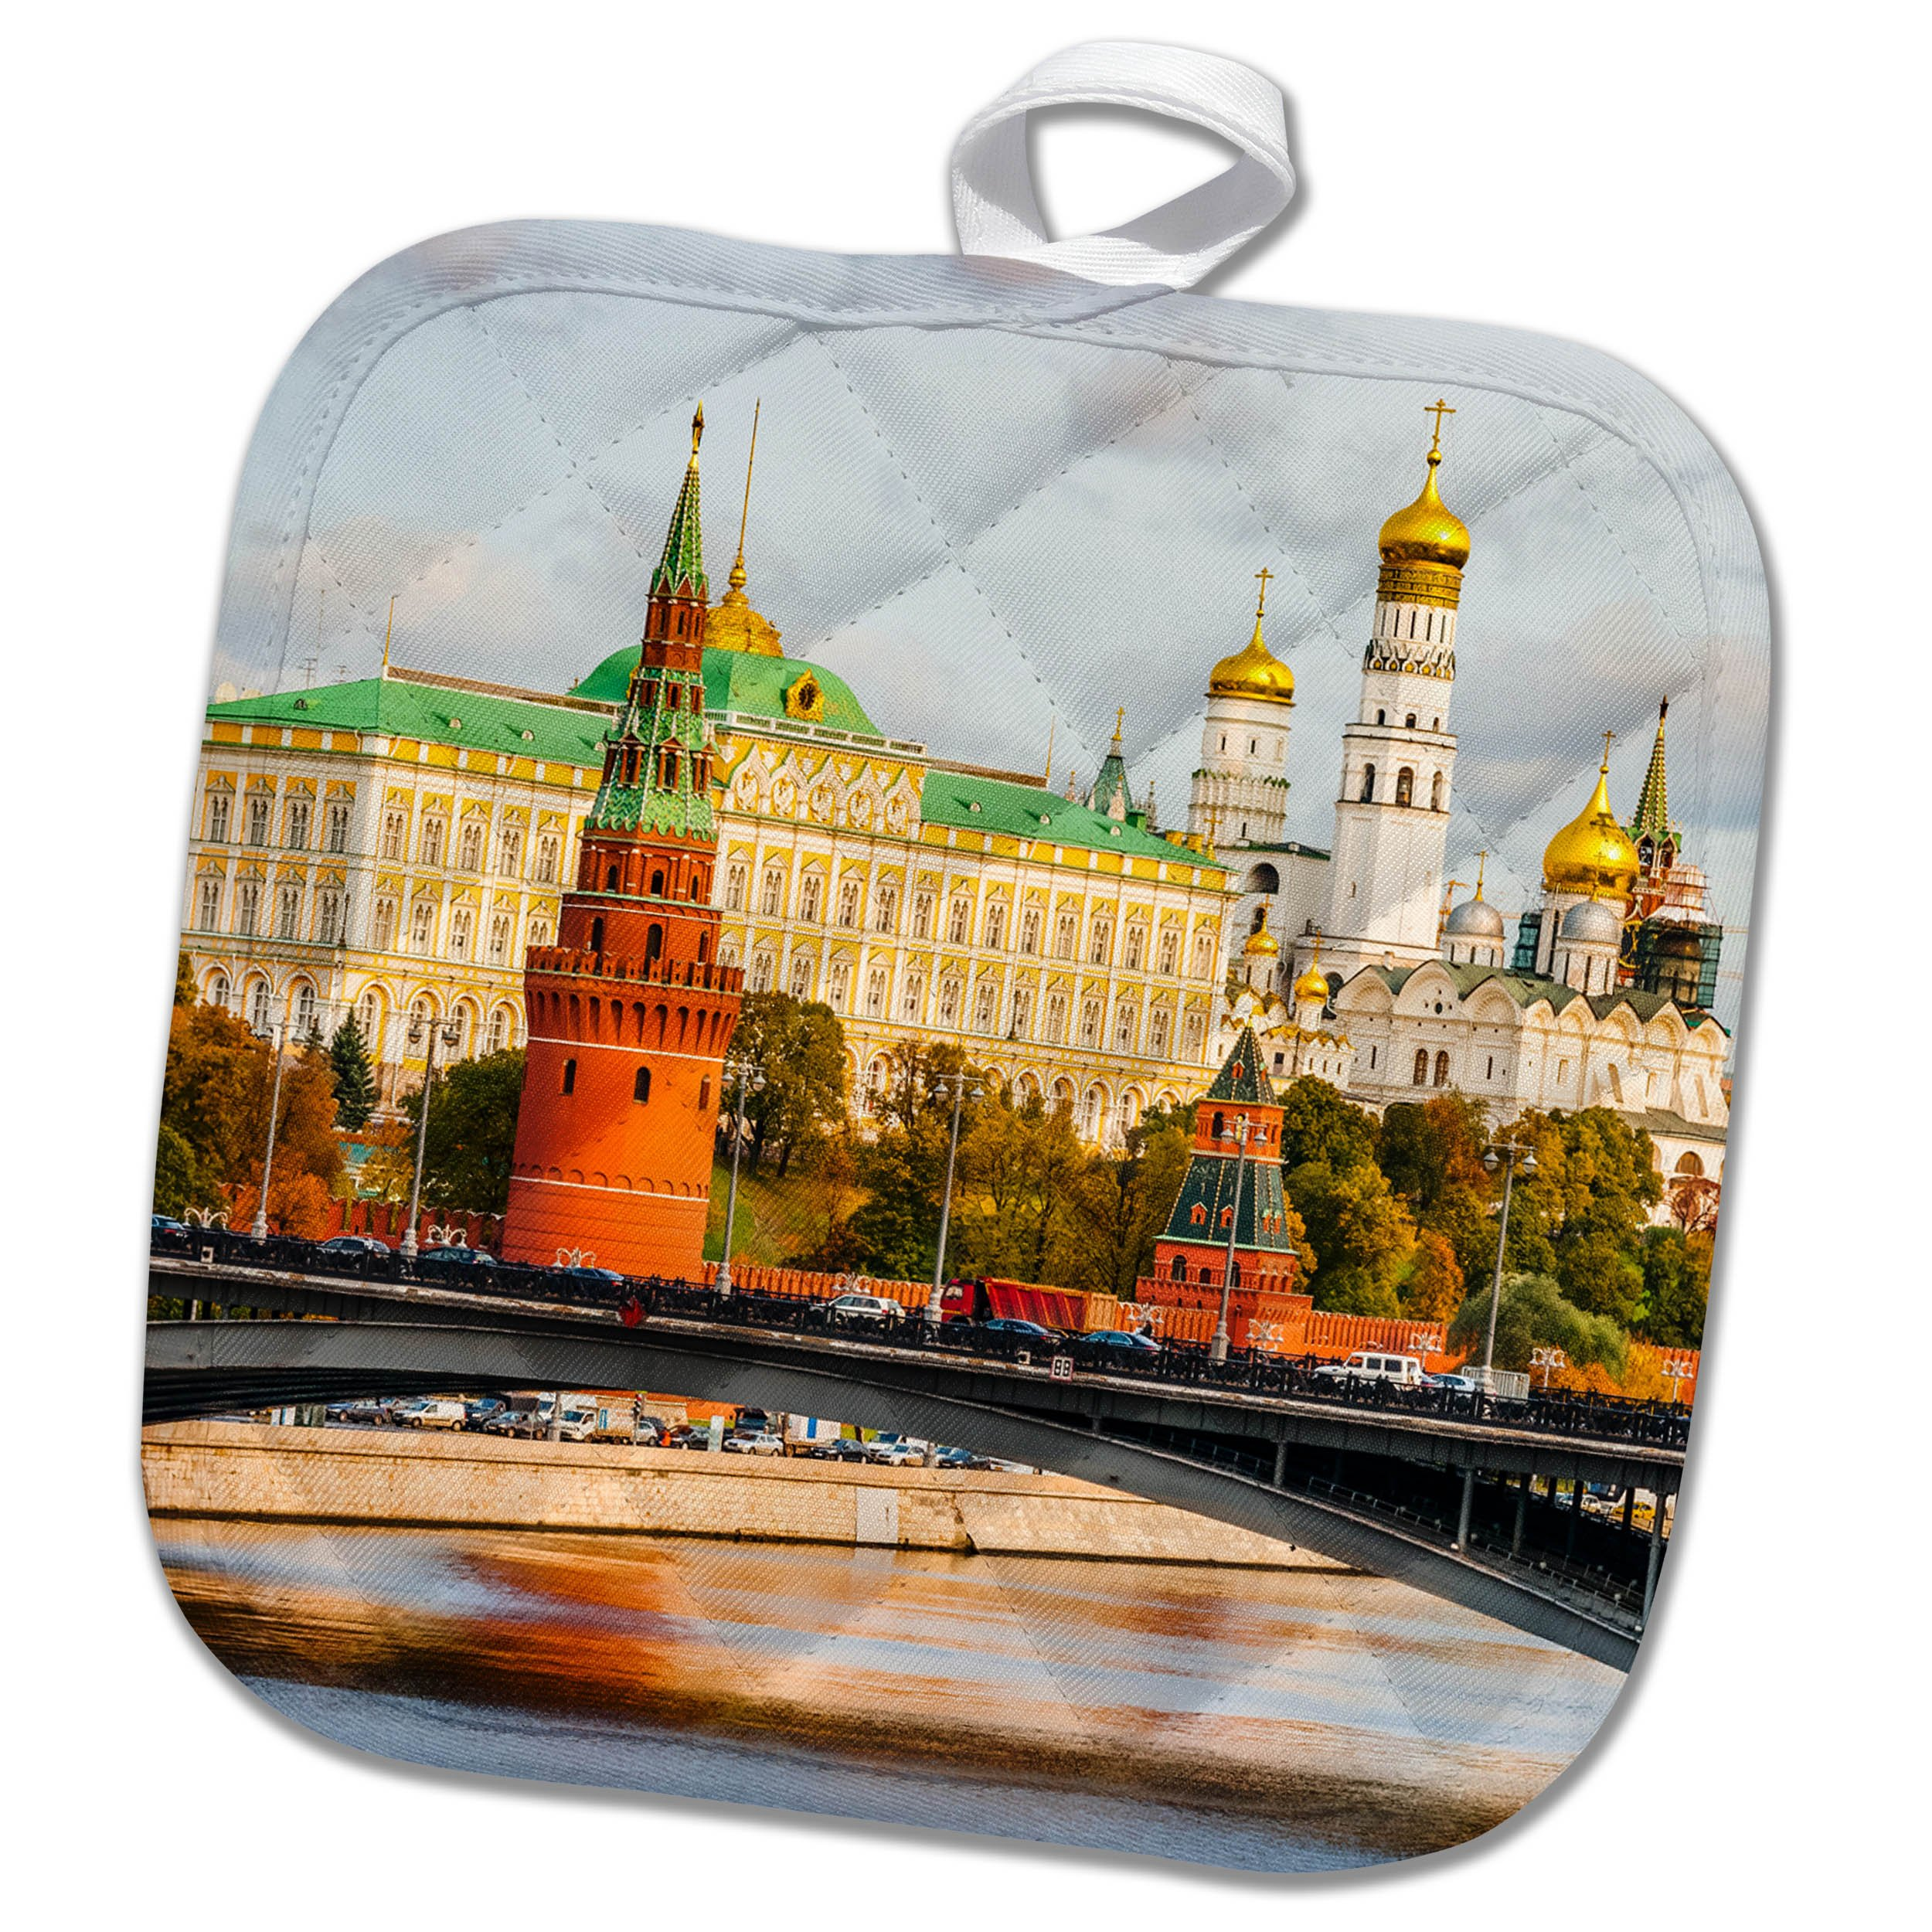 3dRose Alexis Photography - Moscow Kremlin - Moscow Kremlin in autumn. River, bridge, towers, palace and belfry - 8x8 Potholder (phl_267327_1)